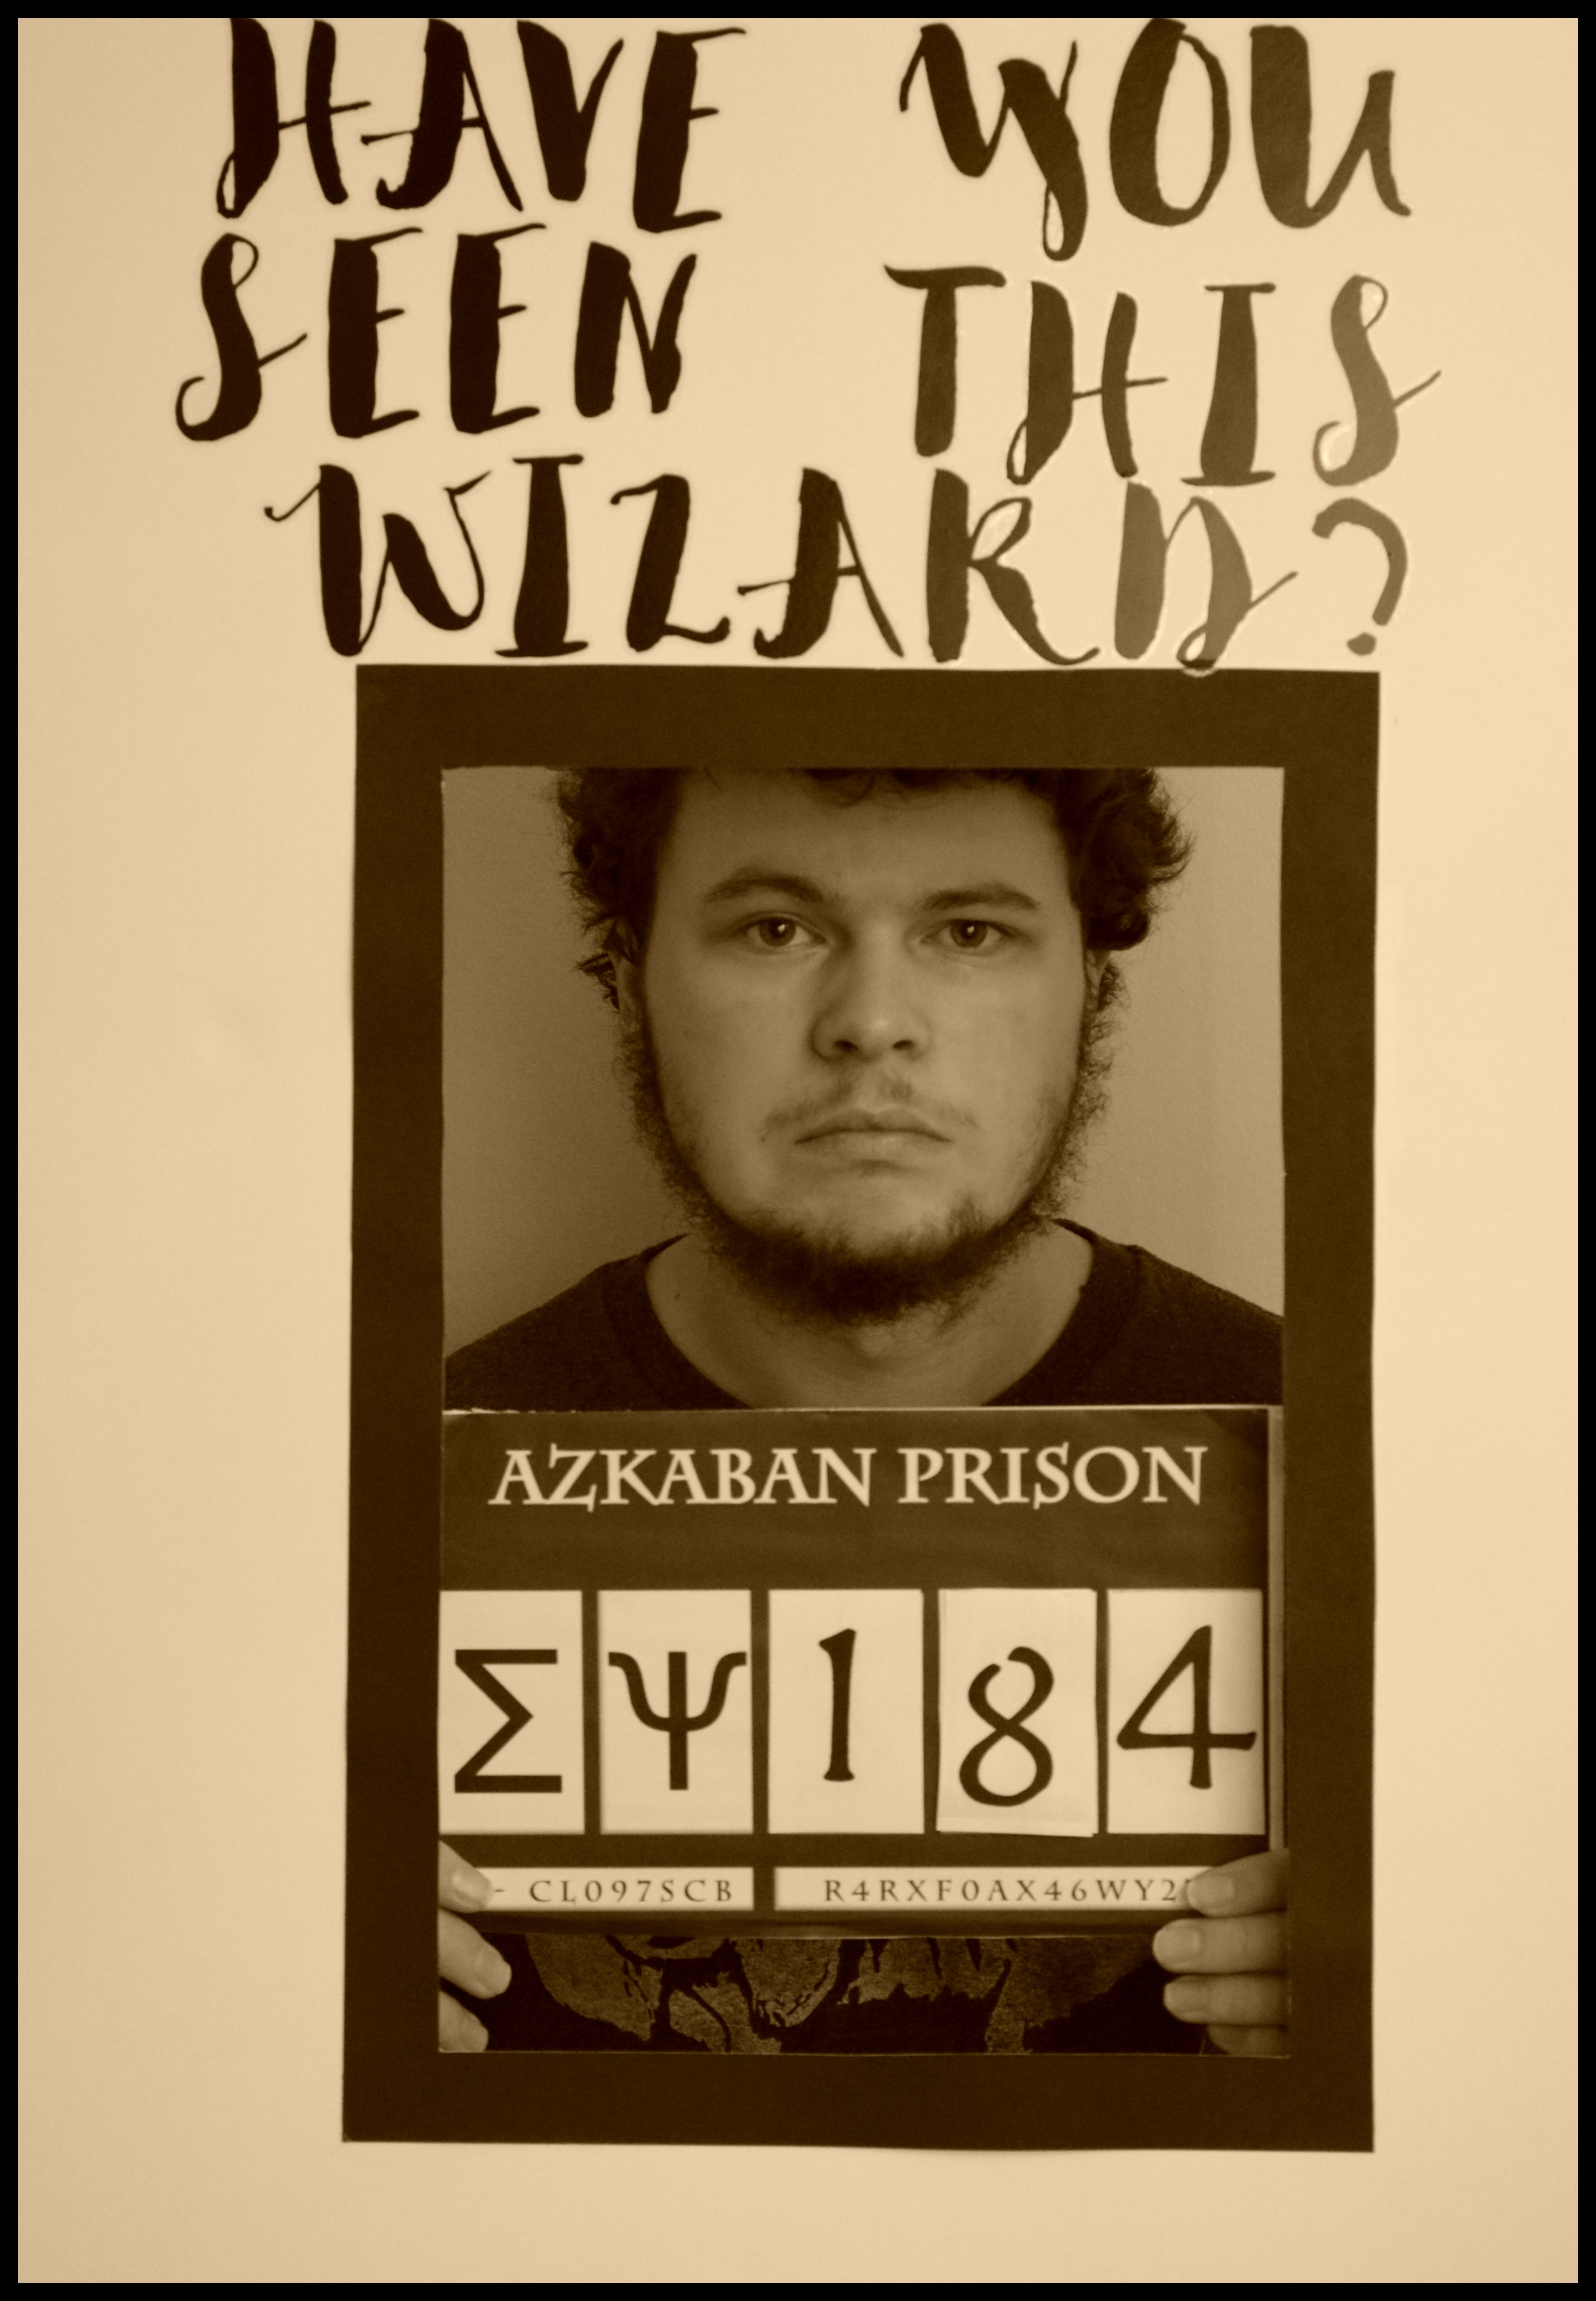 Harry Potter Have You Seen This Wizard Wanted Poster DIY